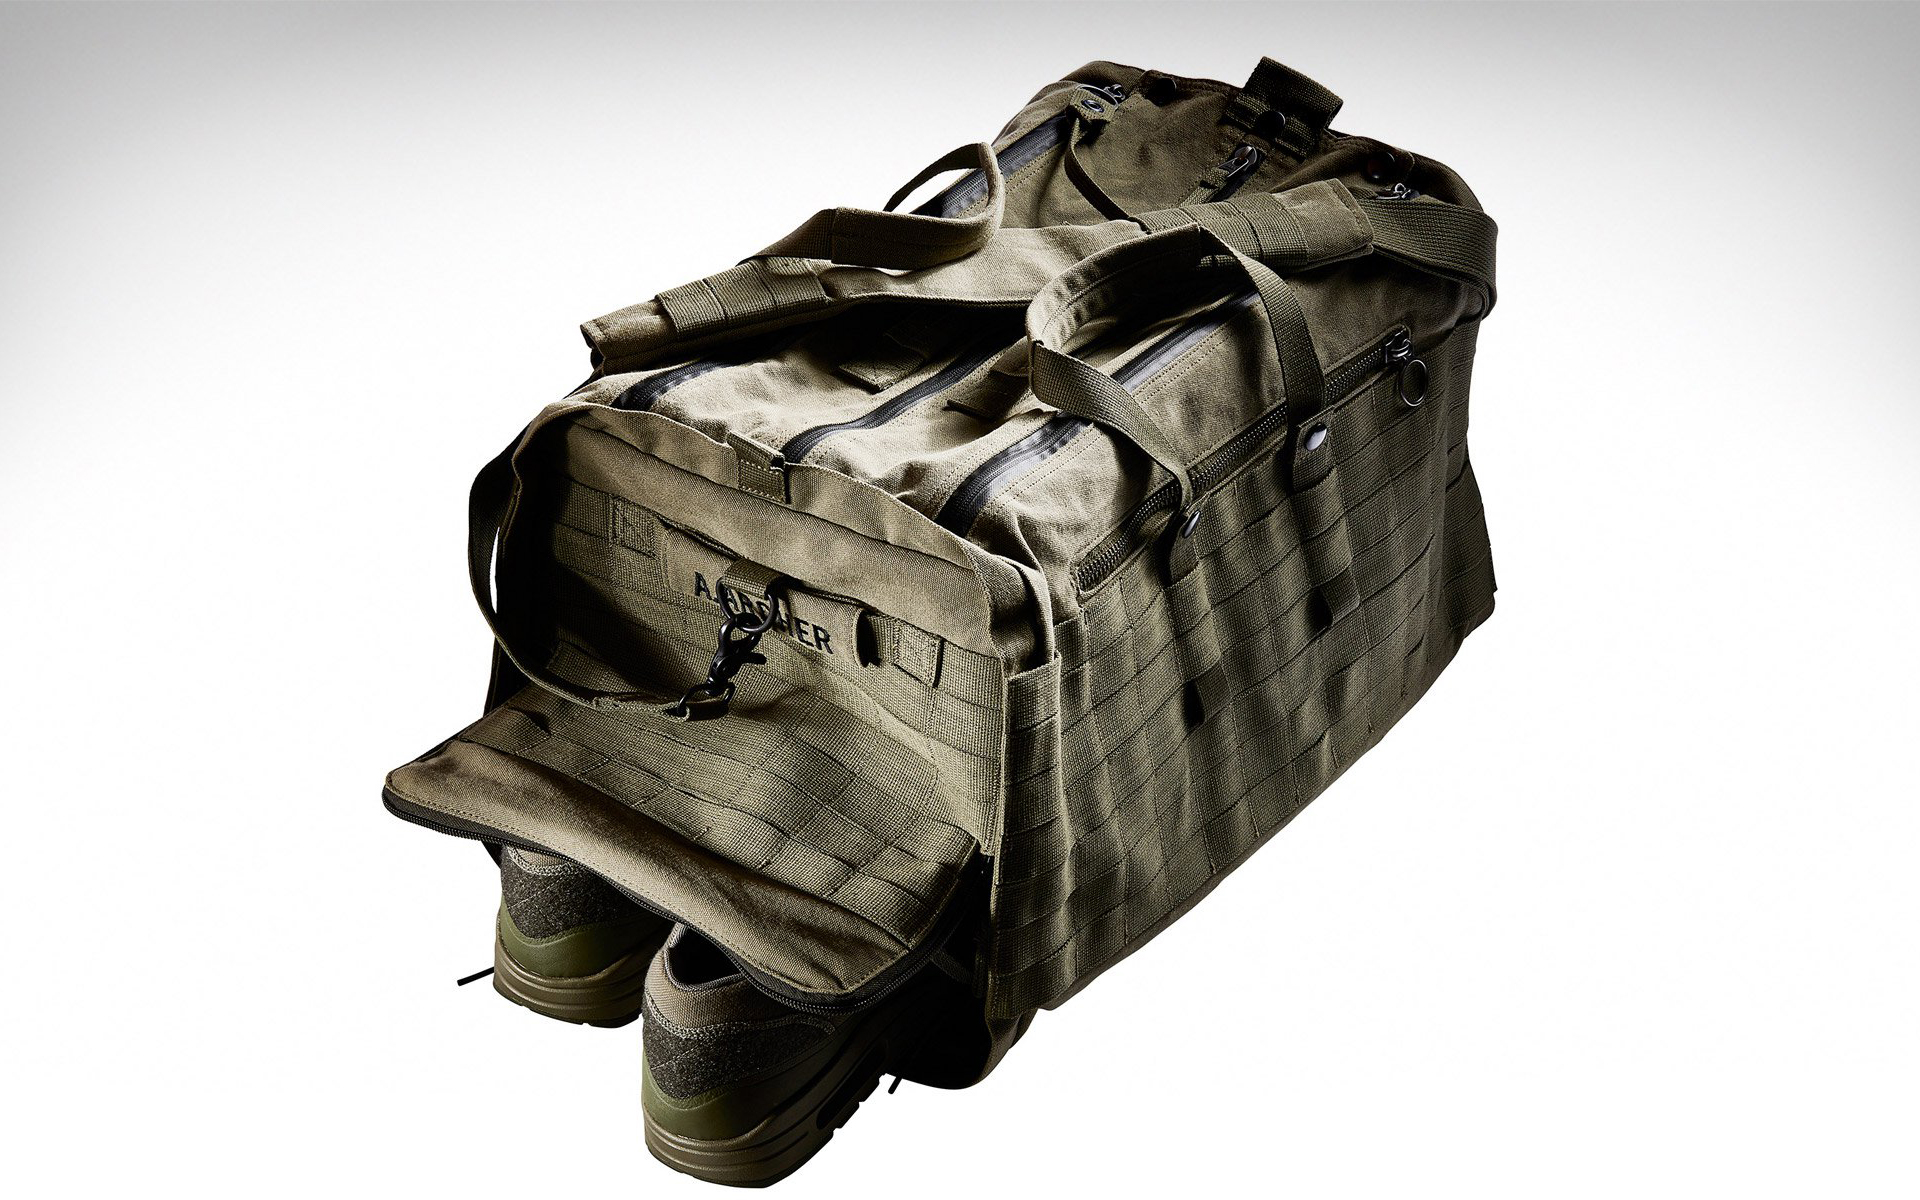 Able Archer Duffel